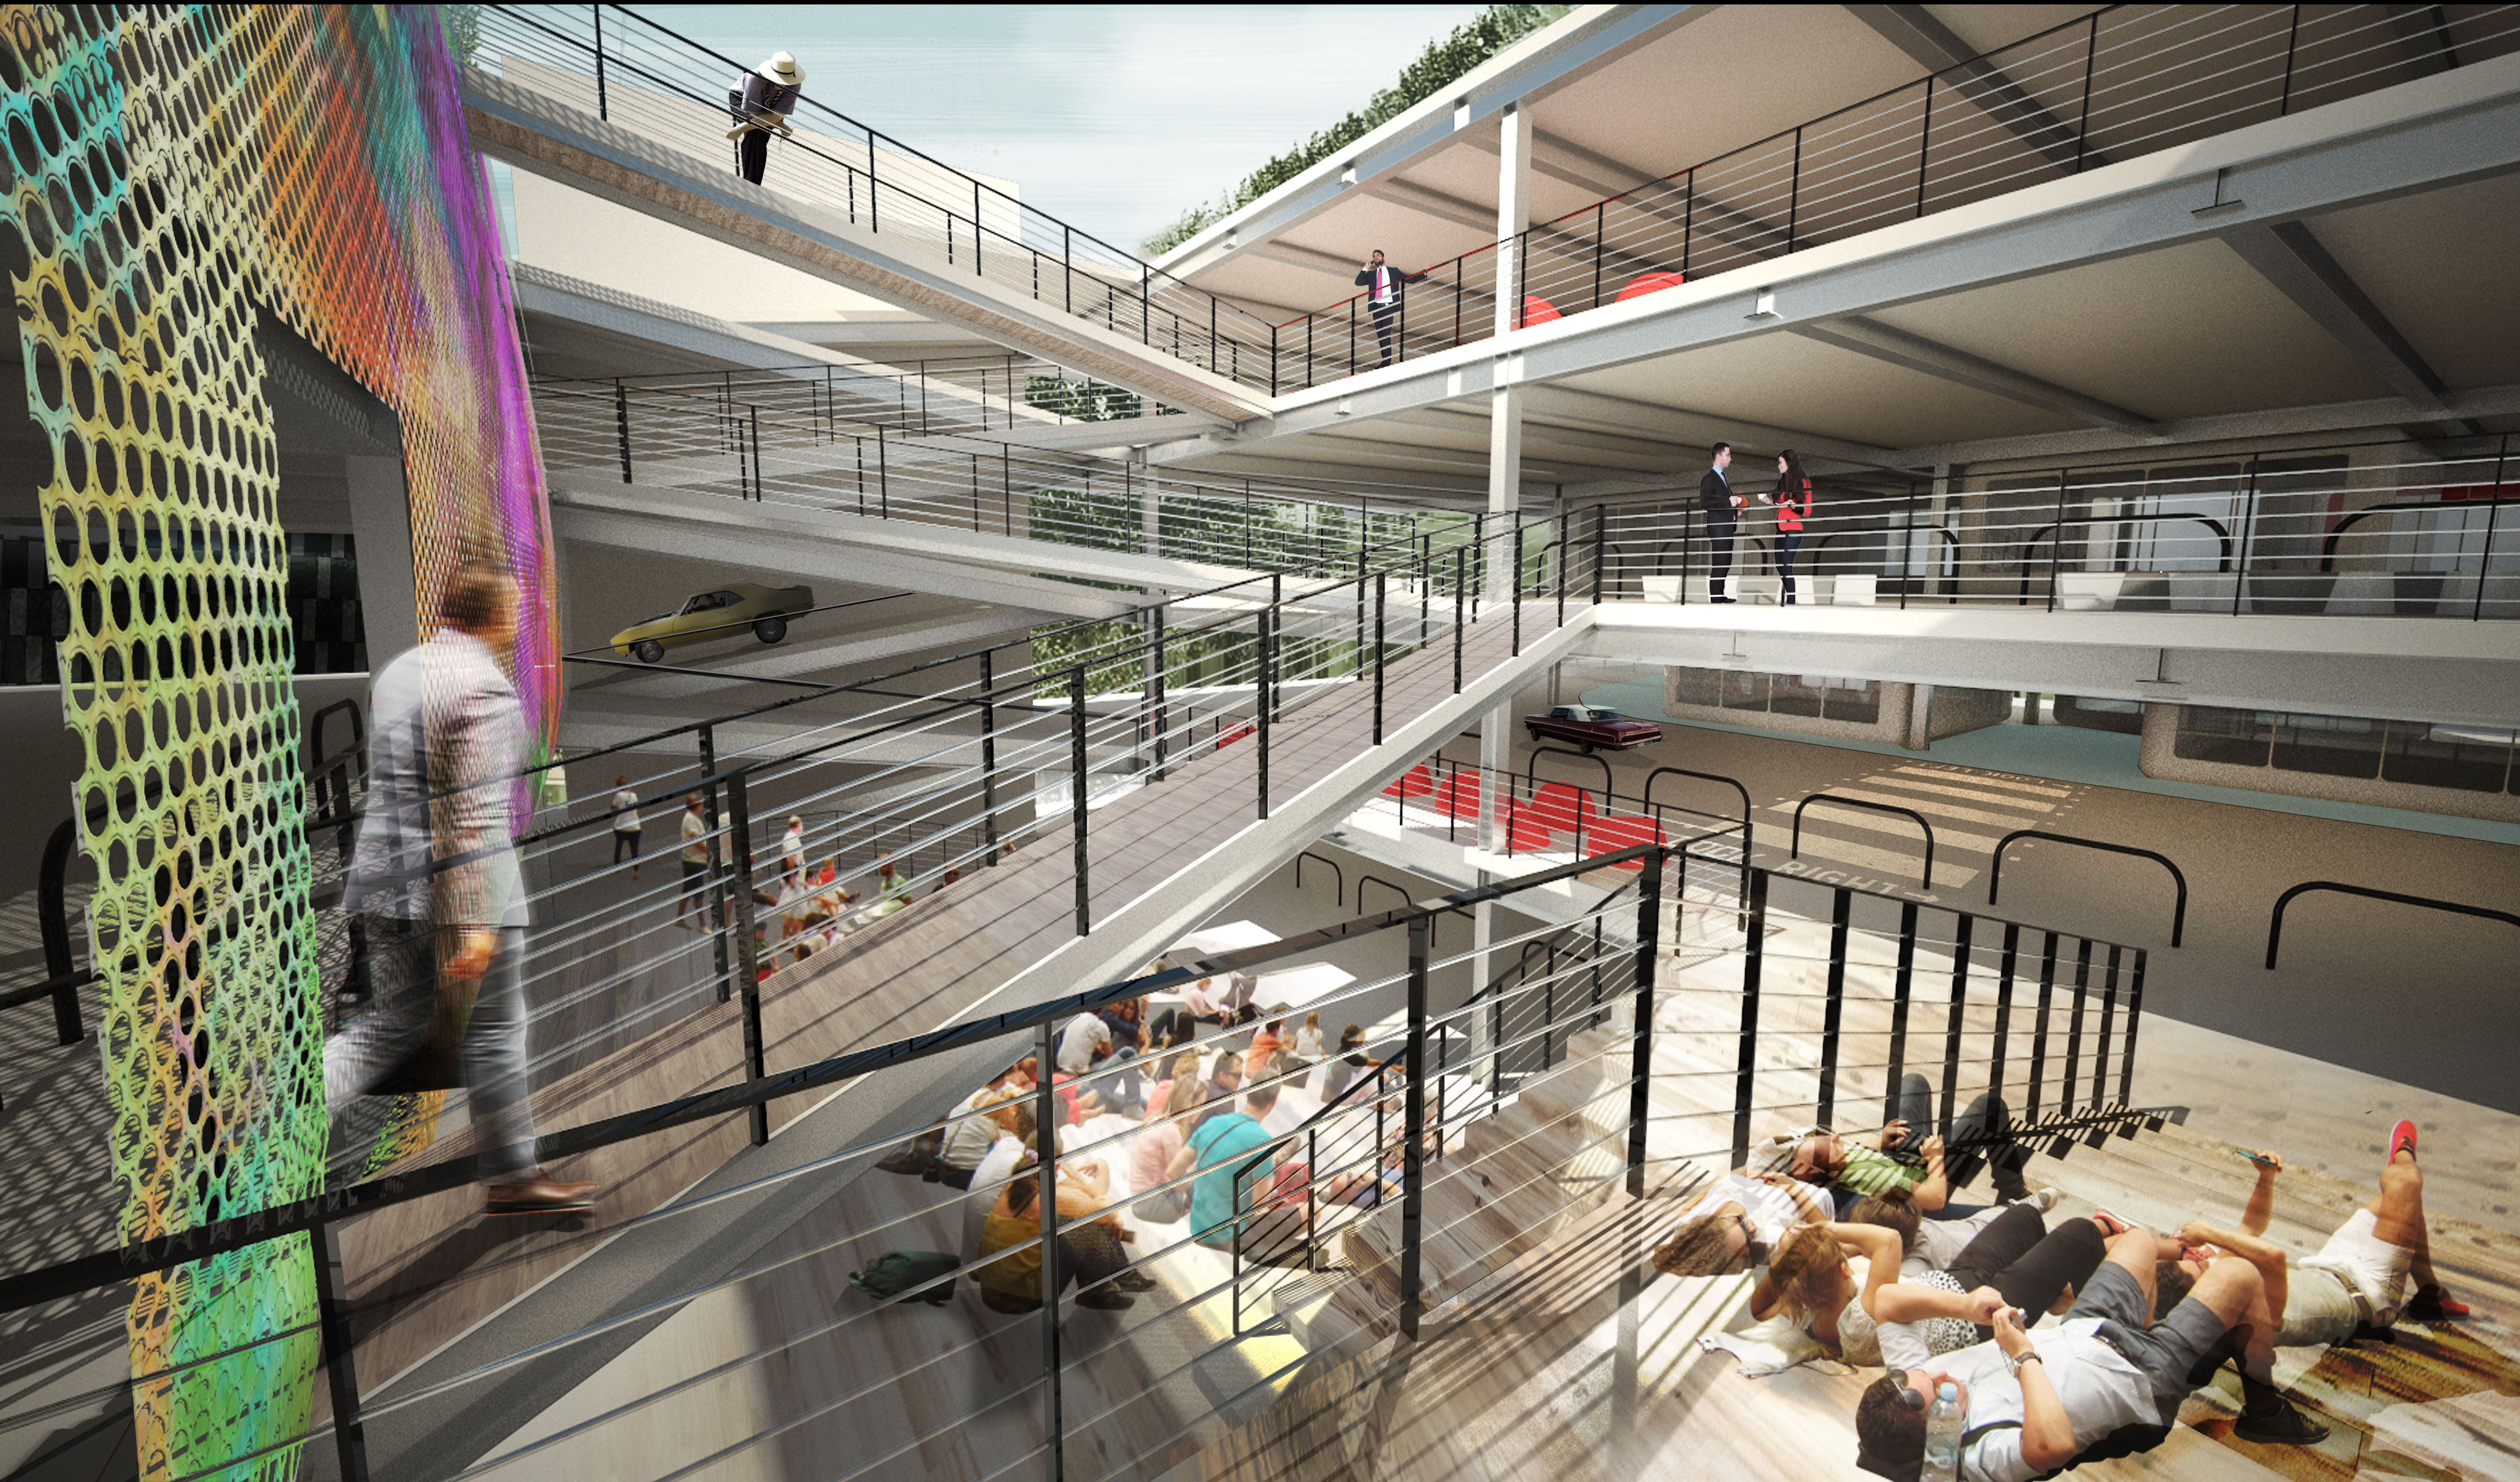 parking garages are getting a second life as places for people a parking garage reimagined as a colorful seating area